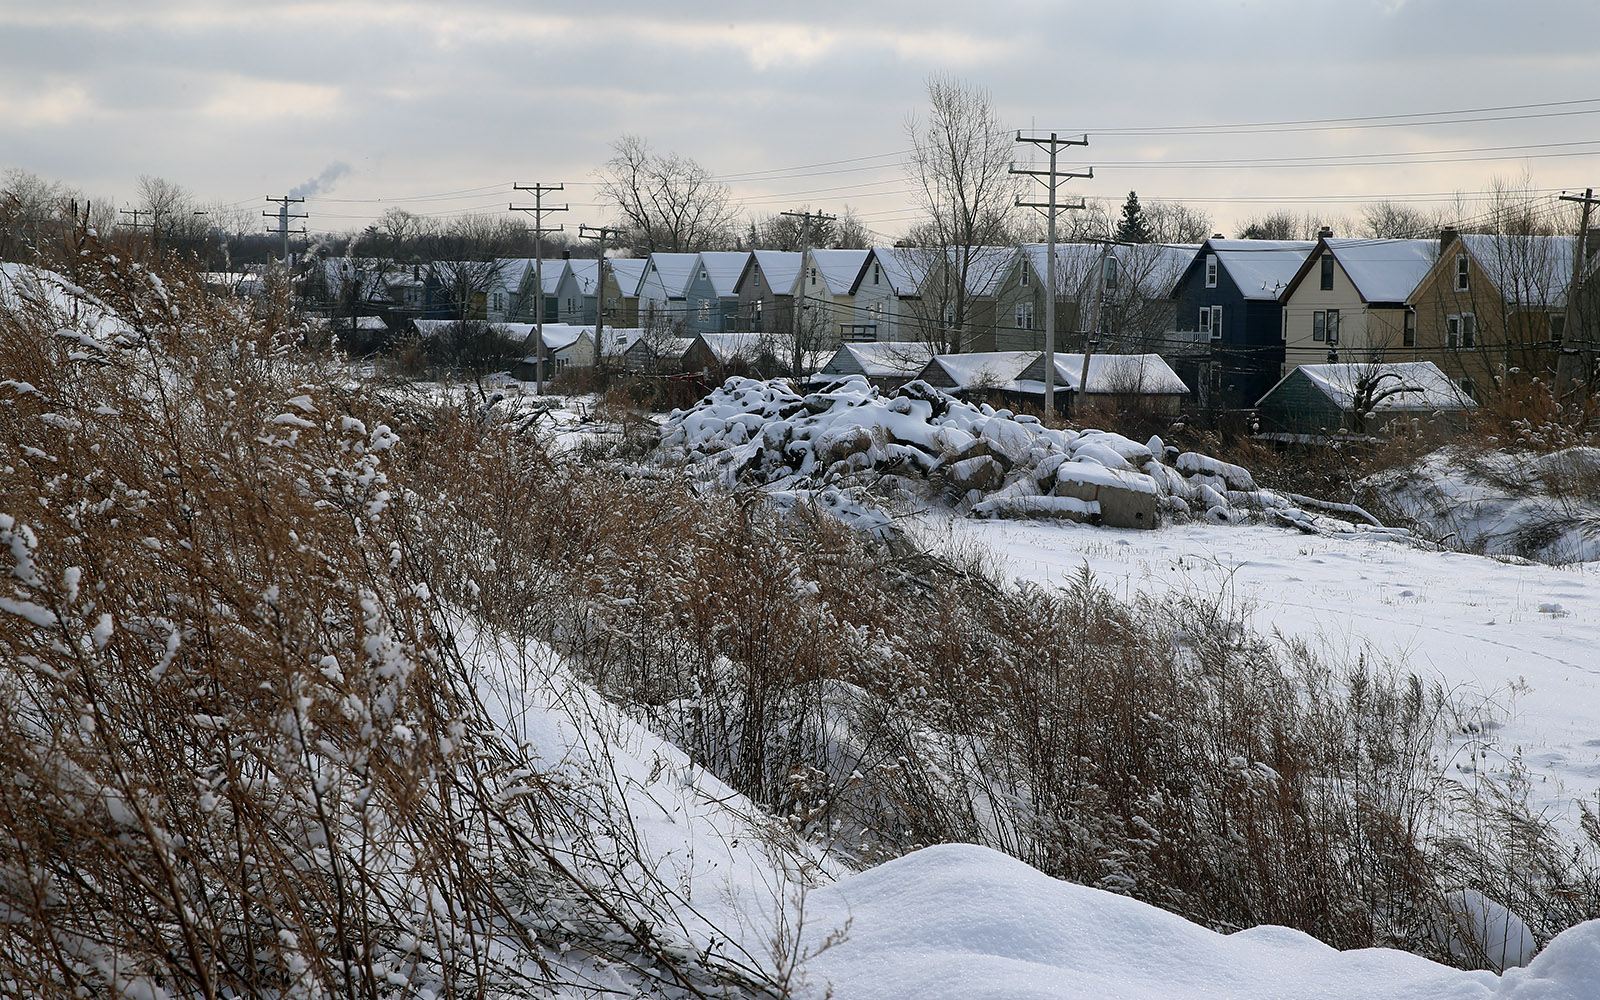 Colvin Estates selling out, but unhappy neighbors confront